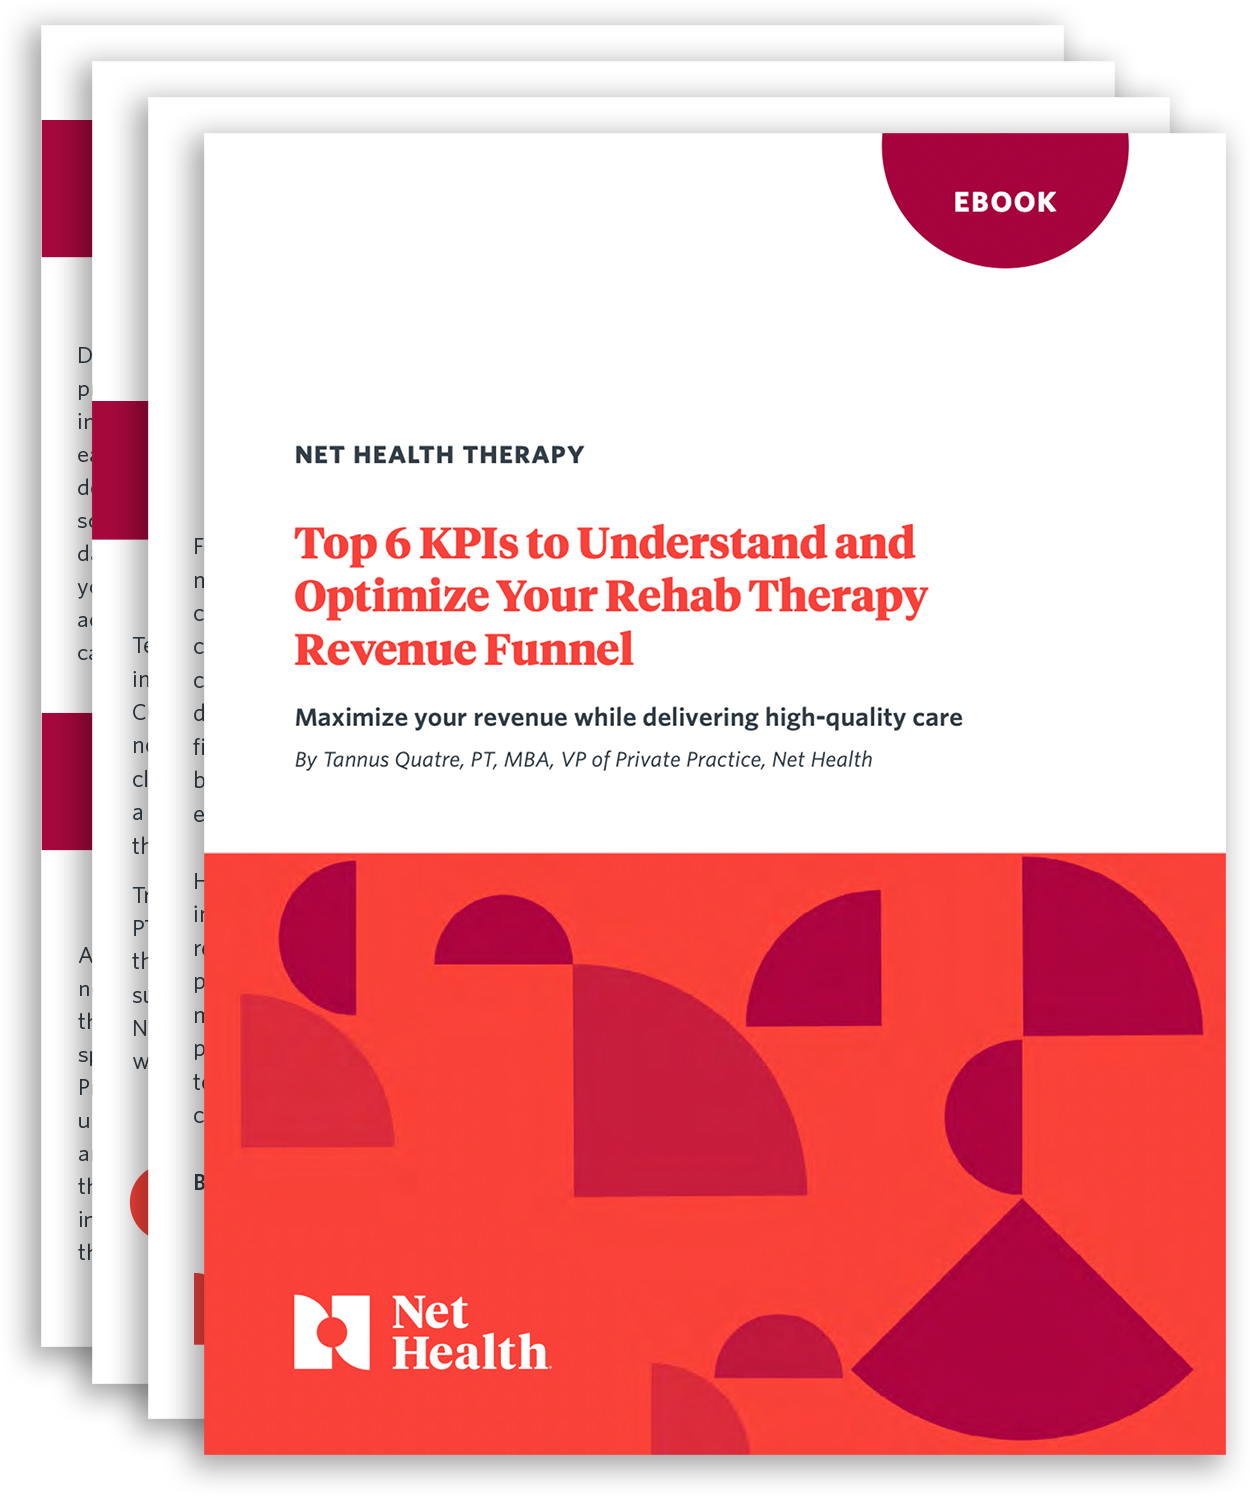 Top 6 KPIs to Understand and Optimize Your Rehab Therapy Revenue Funnel